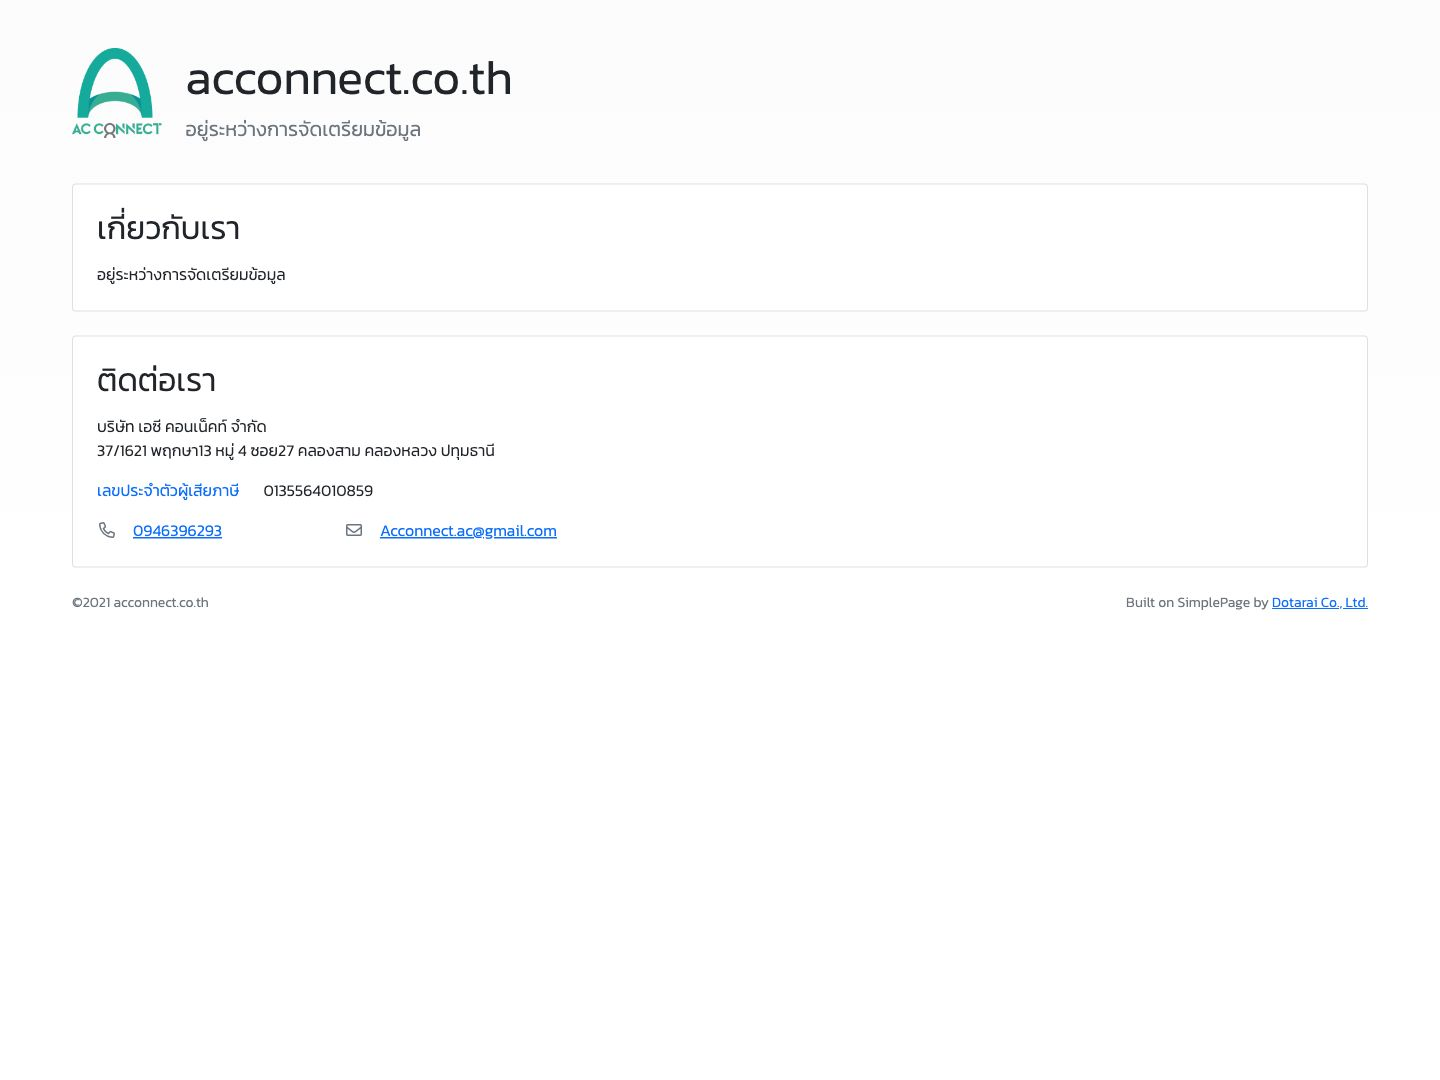 acconnect.co.th